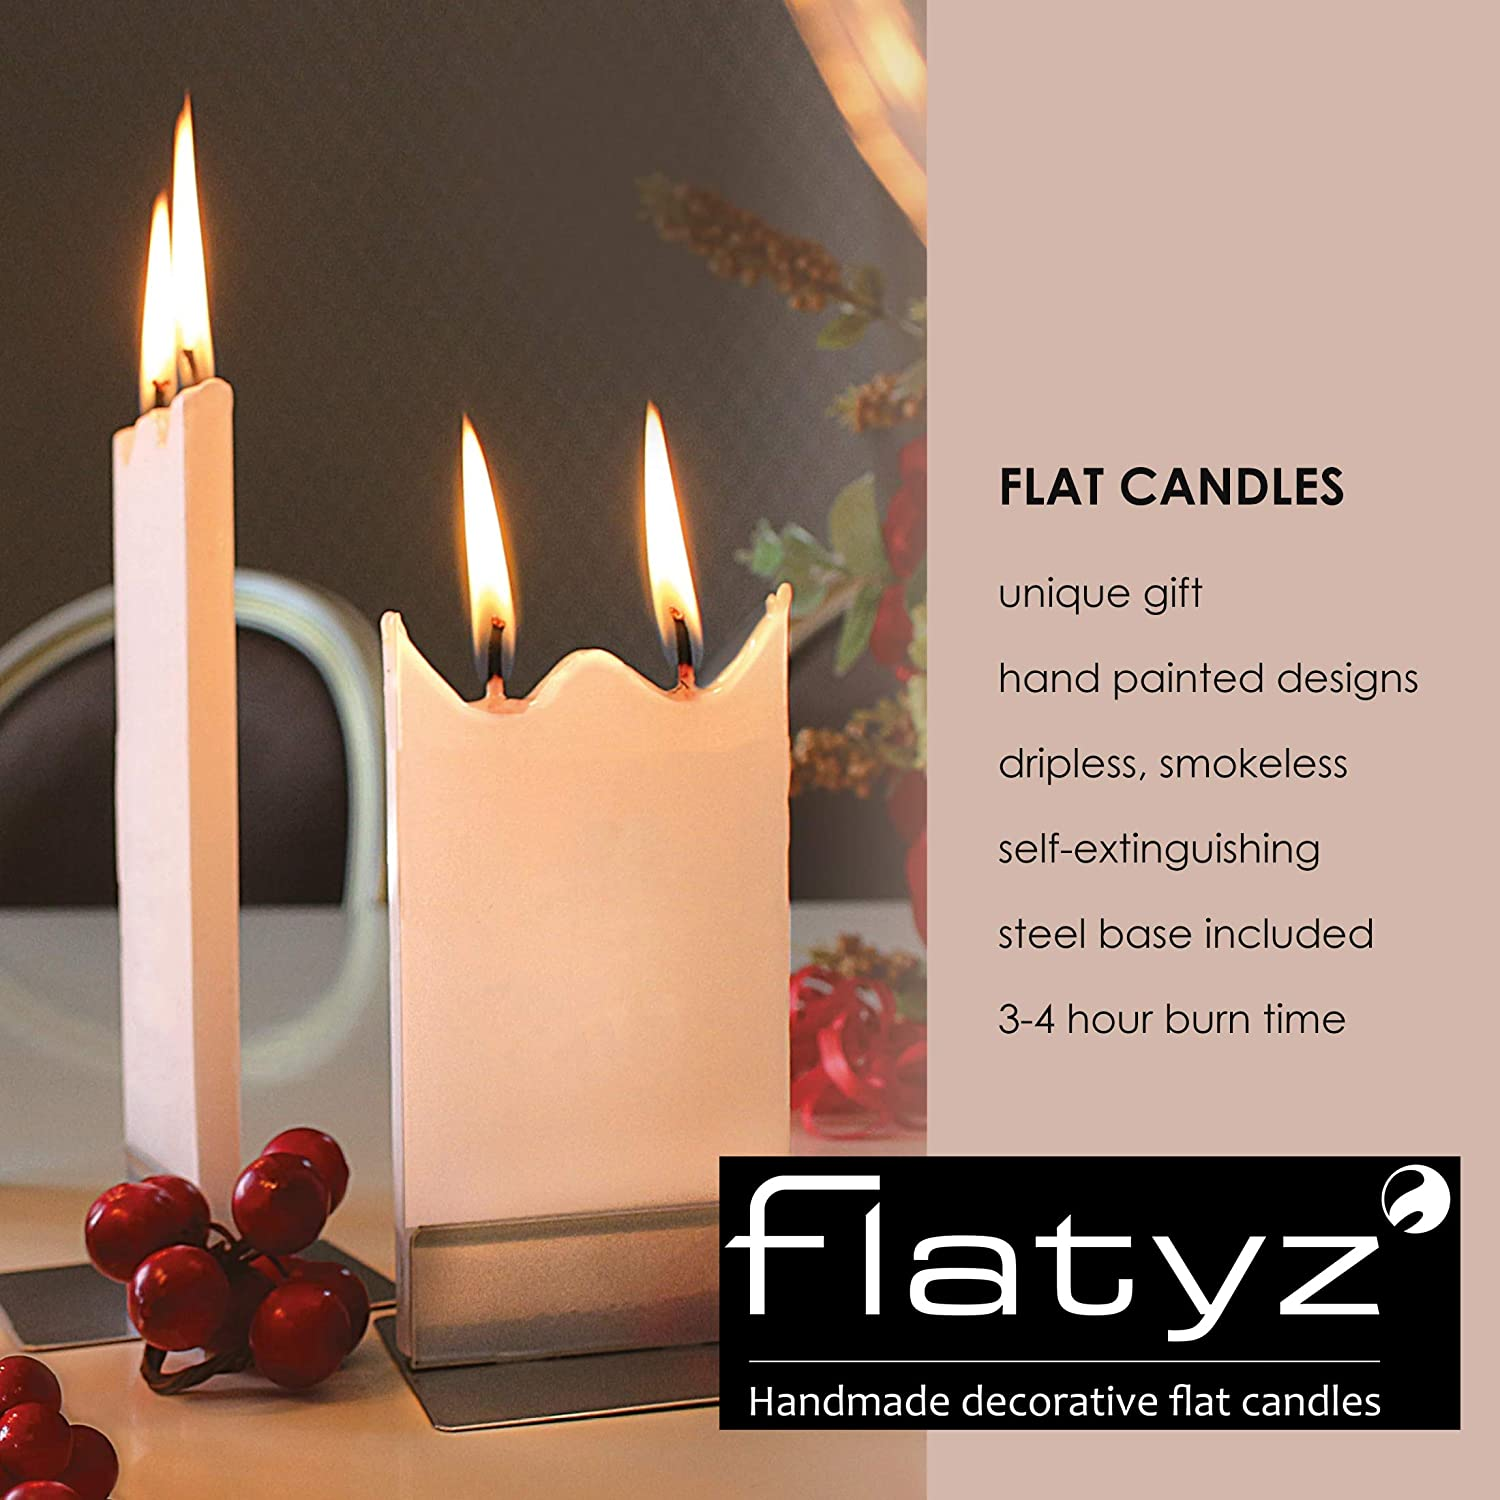 6 inches Hand Painted Candle Gifts for Women or Men Decorative Flatyz Christmas Candles Red and Green Ornament Design Flat